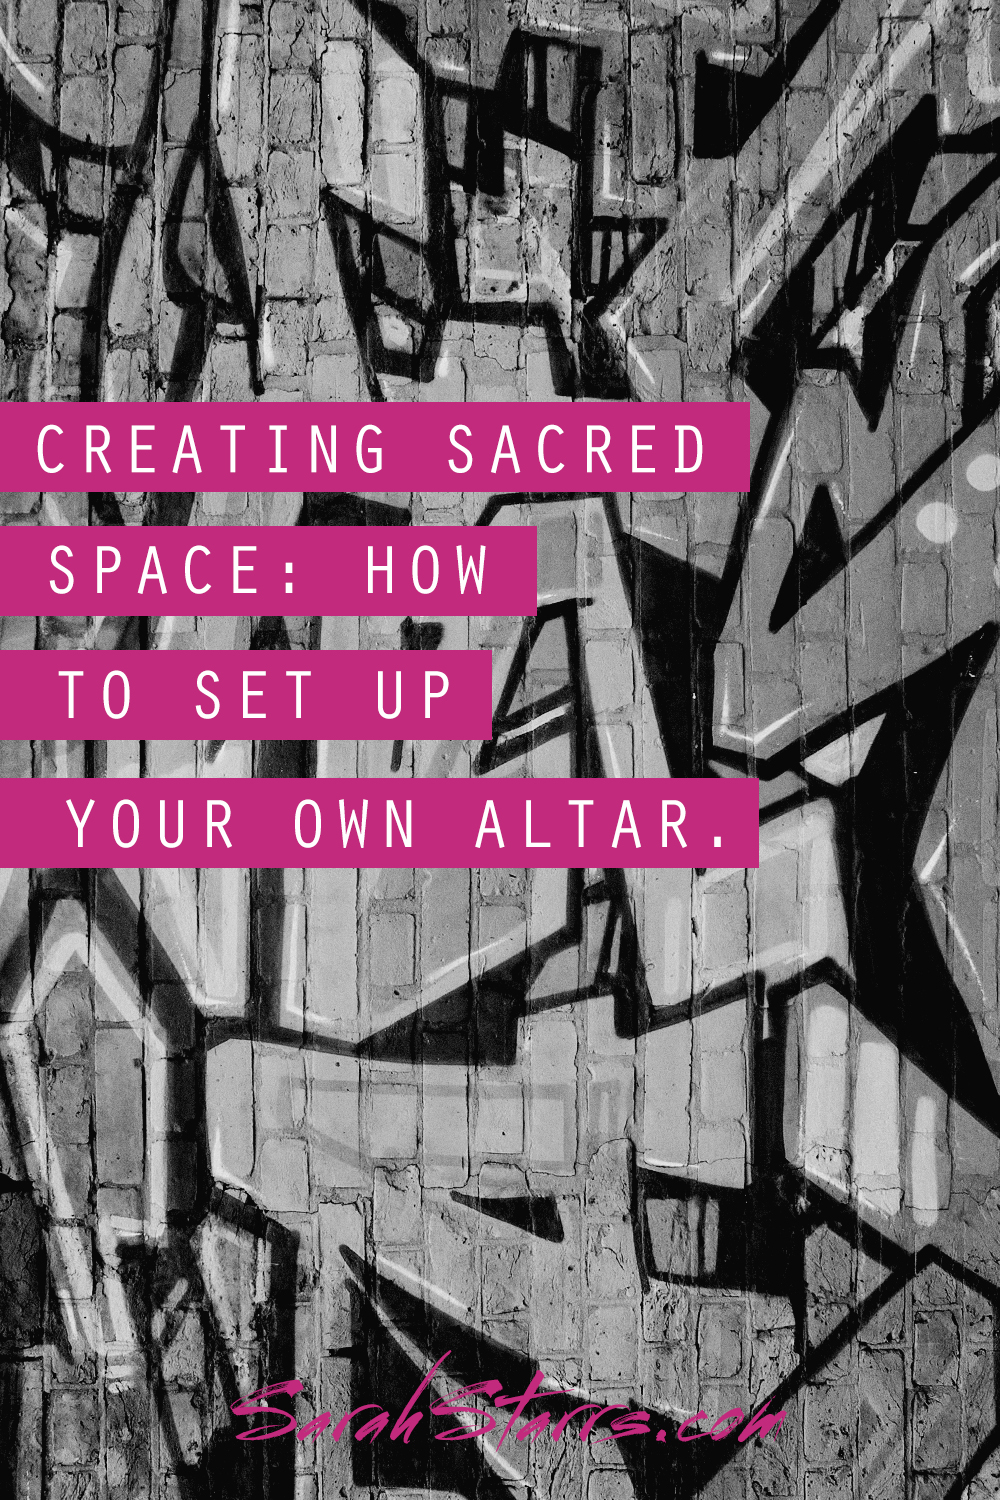 Creating Sacred Space How To Set Up Your Own Altar Sarah Starrs